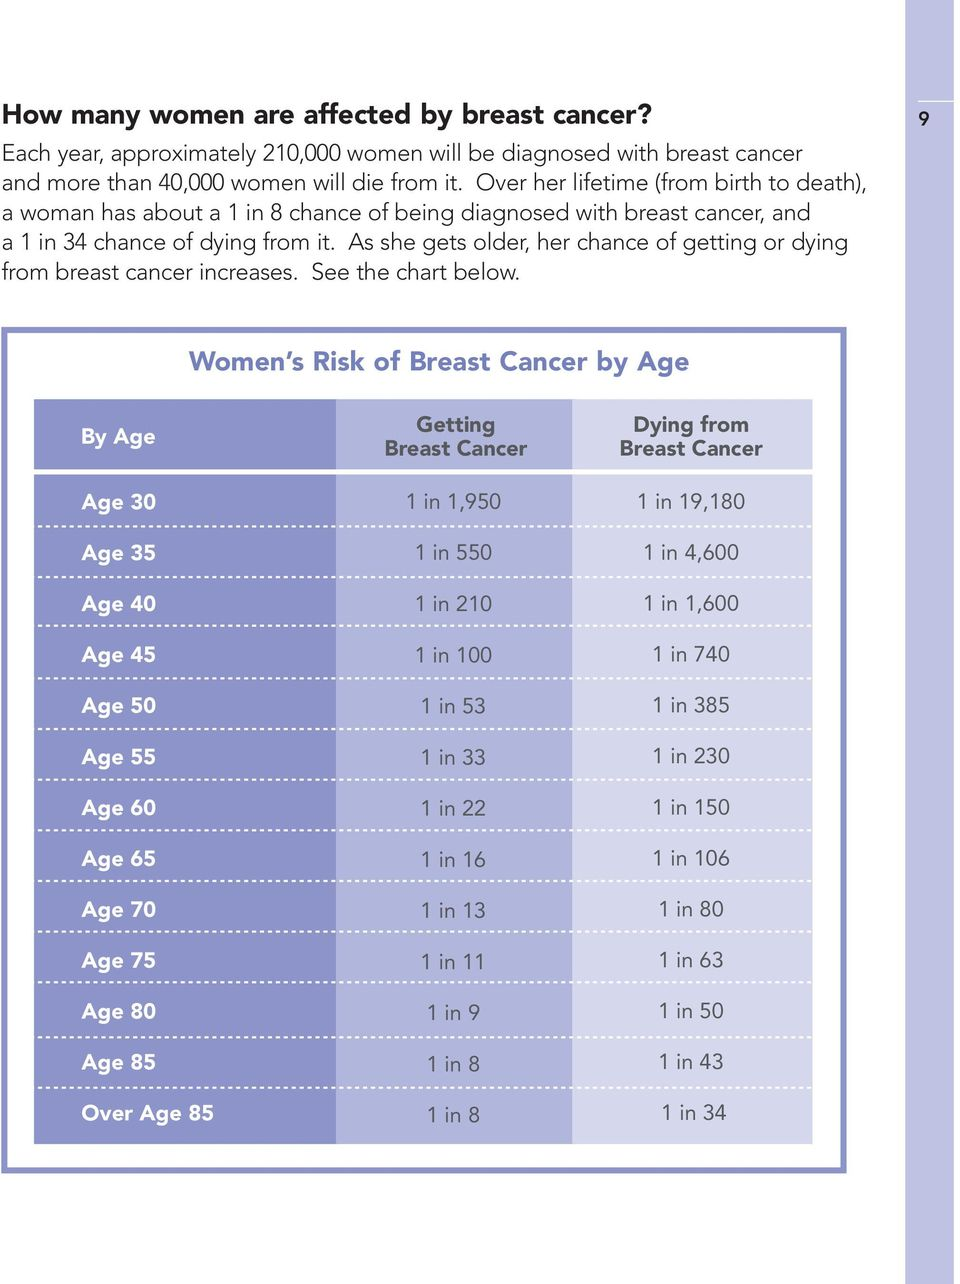 As she gets older, her chance of getting or dying from breast cancer increases. See the chart below.